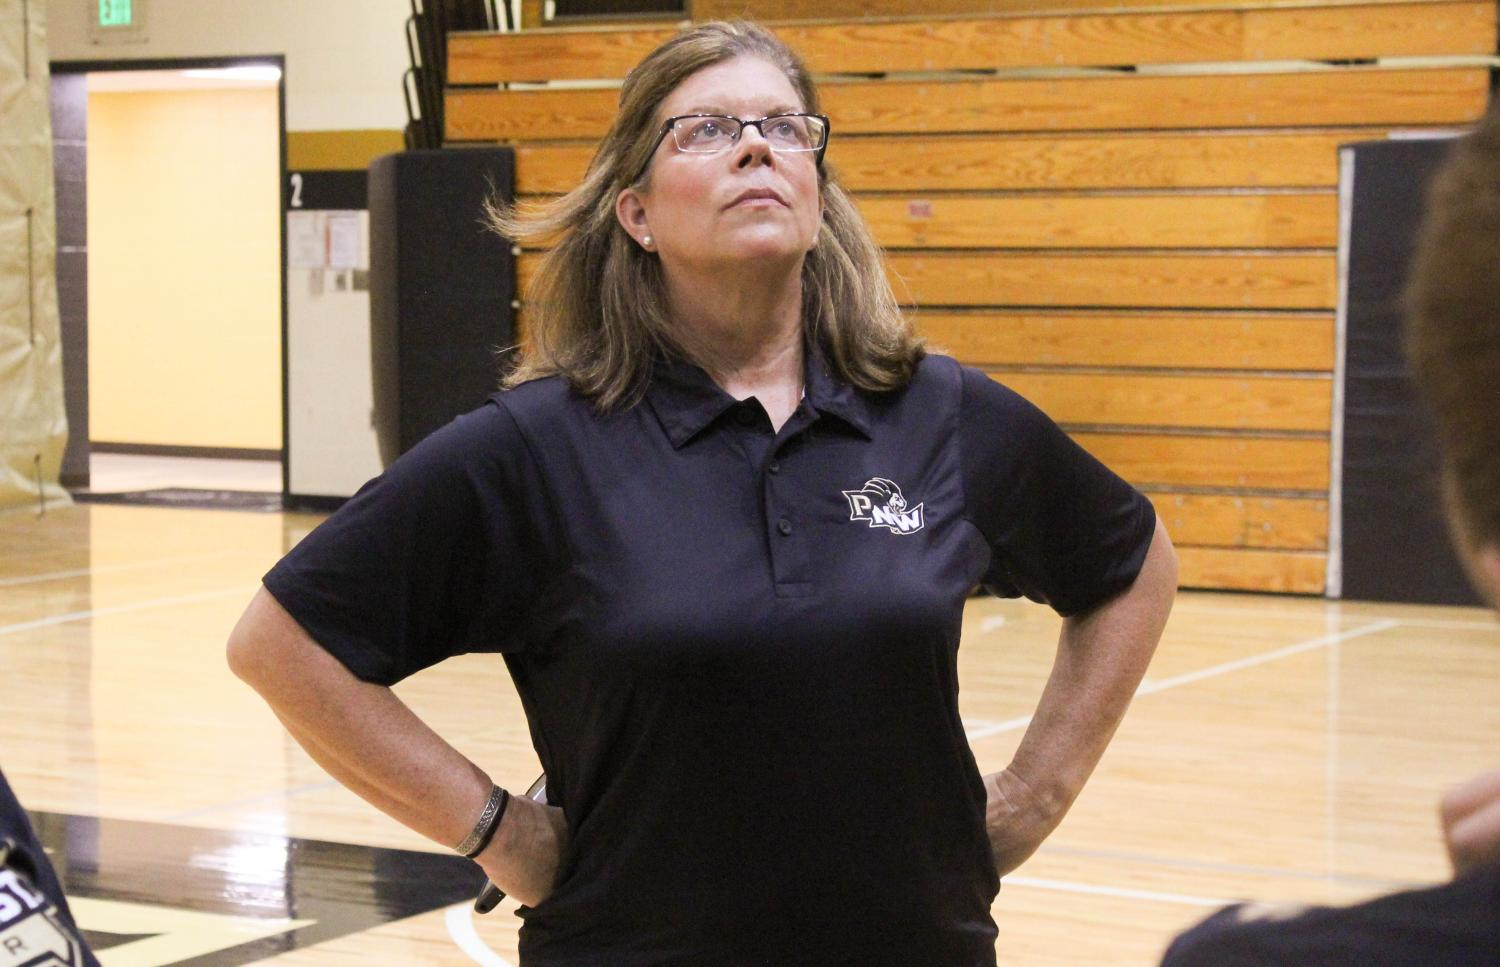 Michelle Searer, cheer coach, watches her team practice for the upcoming season.